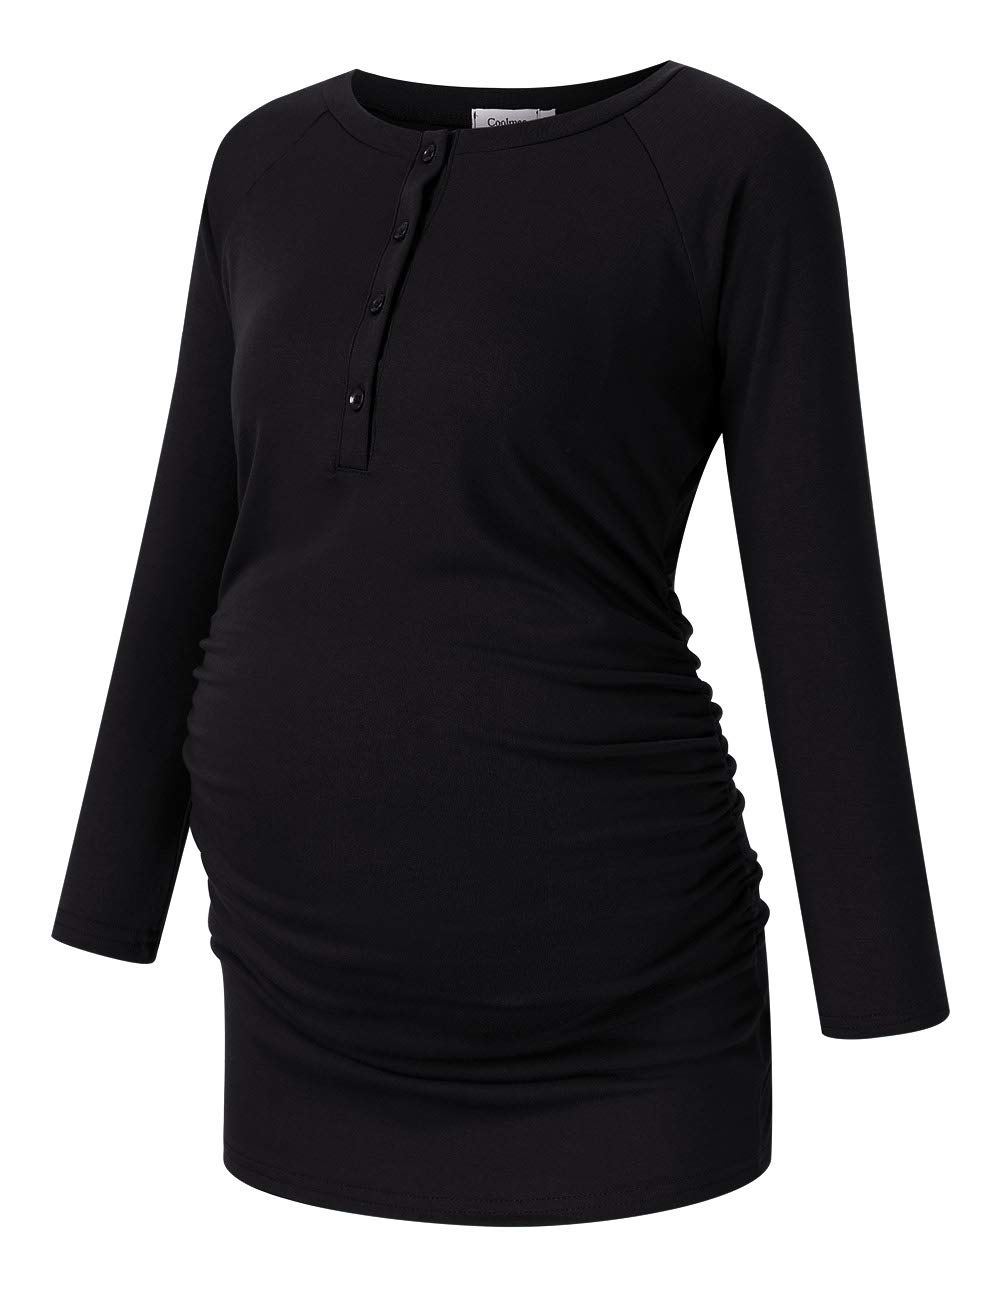 Coolmee Maternity Nursing Top Side Ruched Casual Blouse Breastfeeding Shirts for Womens